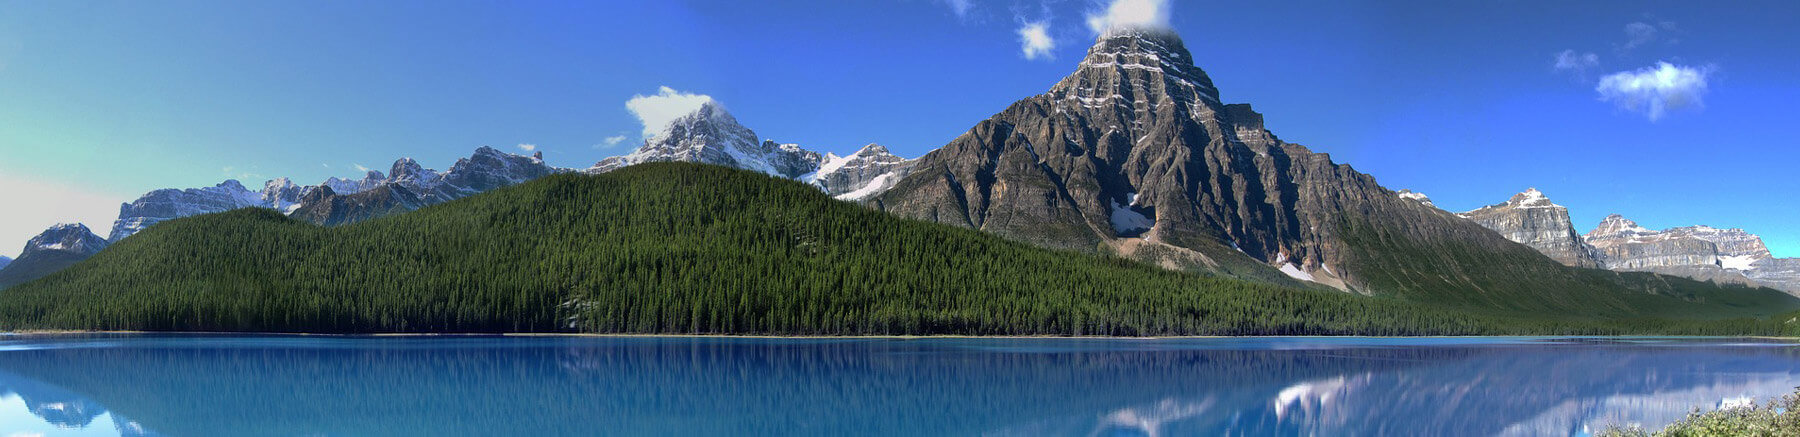 View of Mount Chephren, in the Mistaya River Valley in Banff National Park in Canada